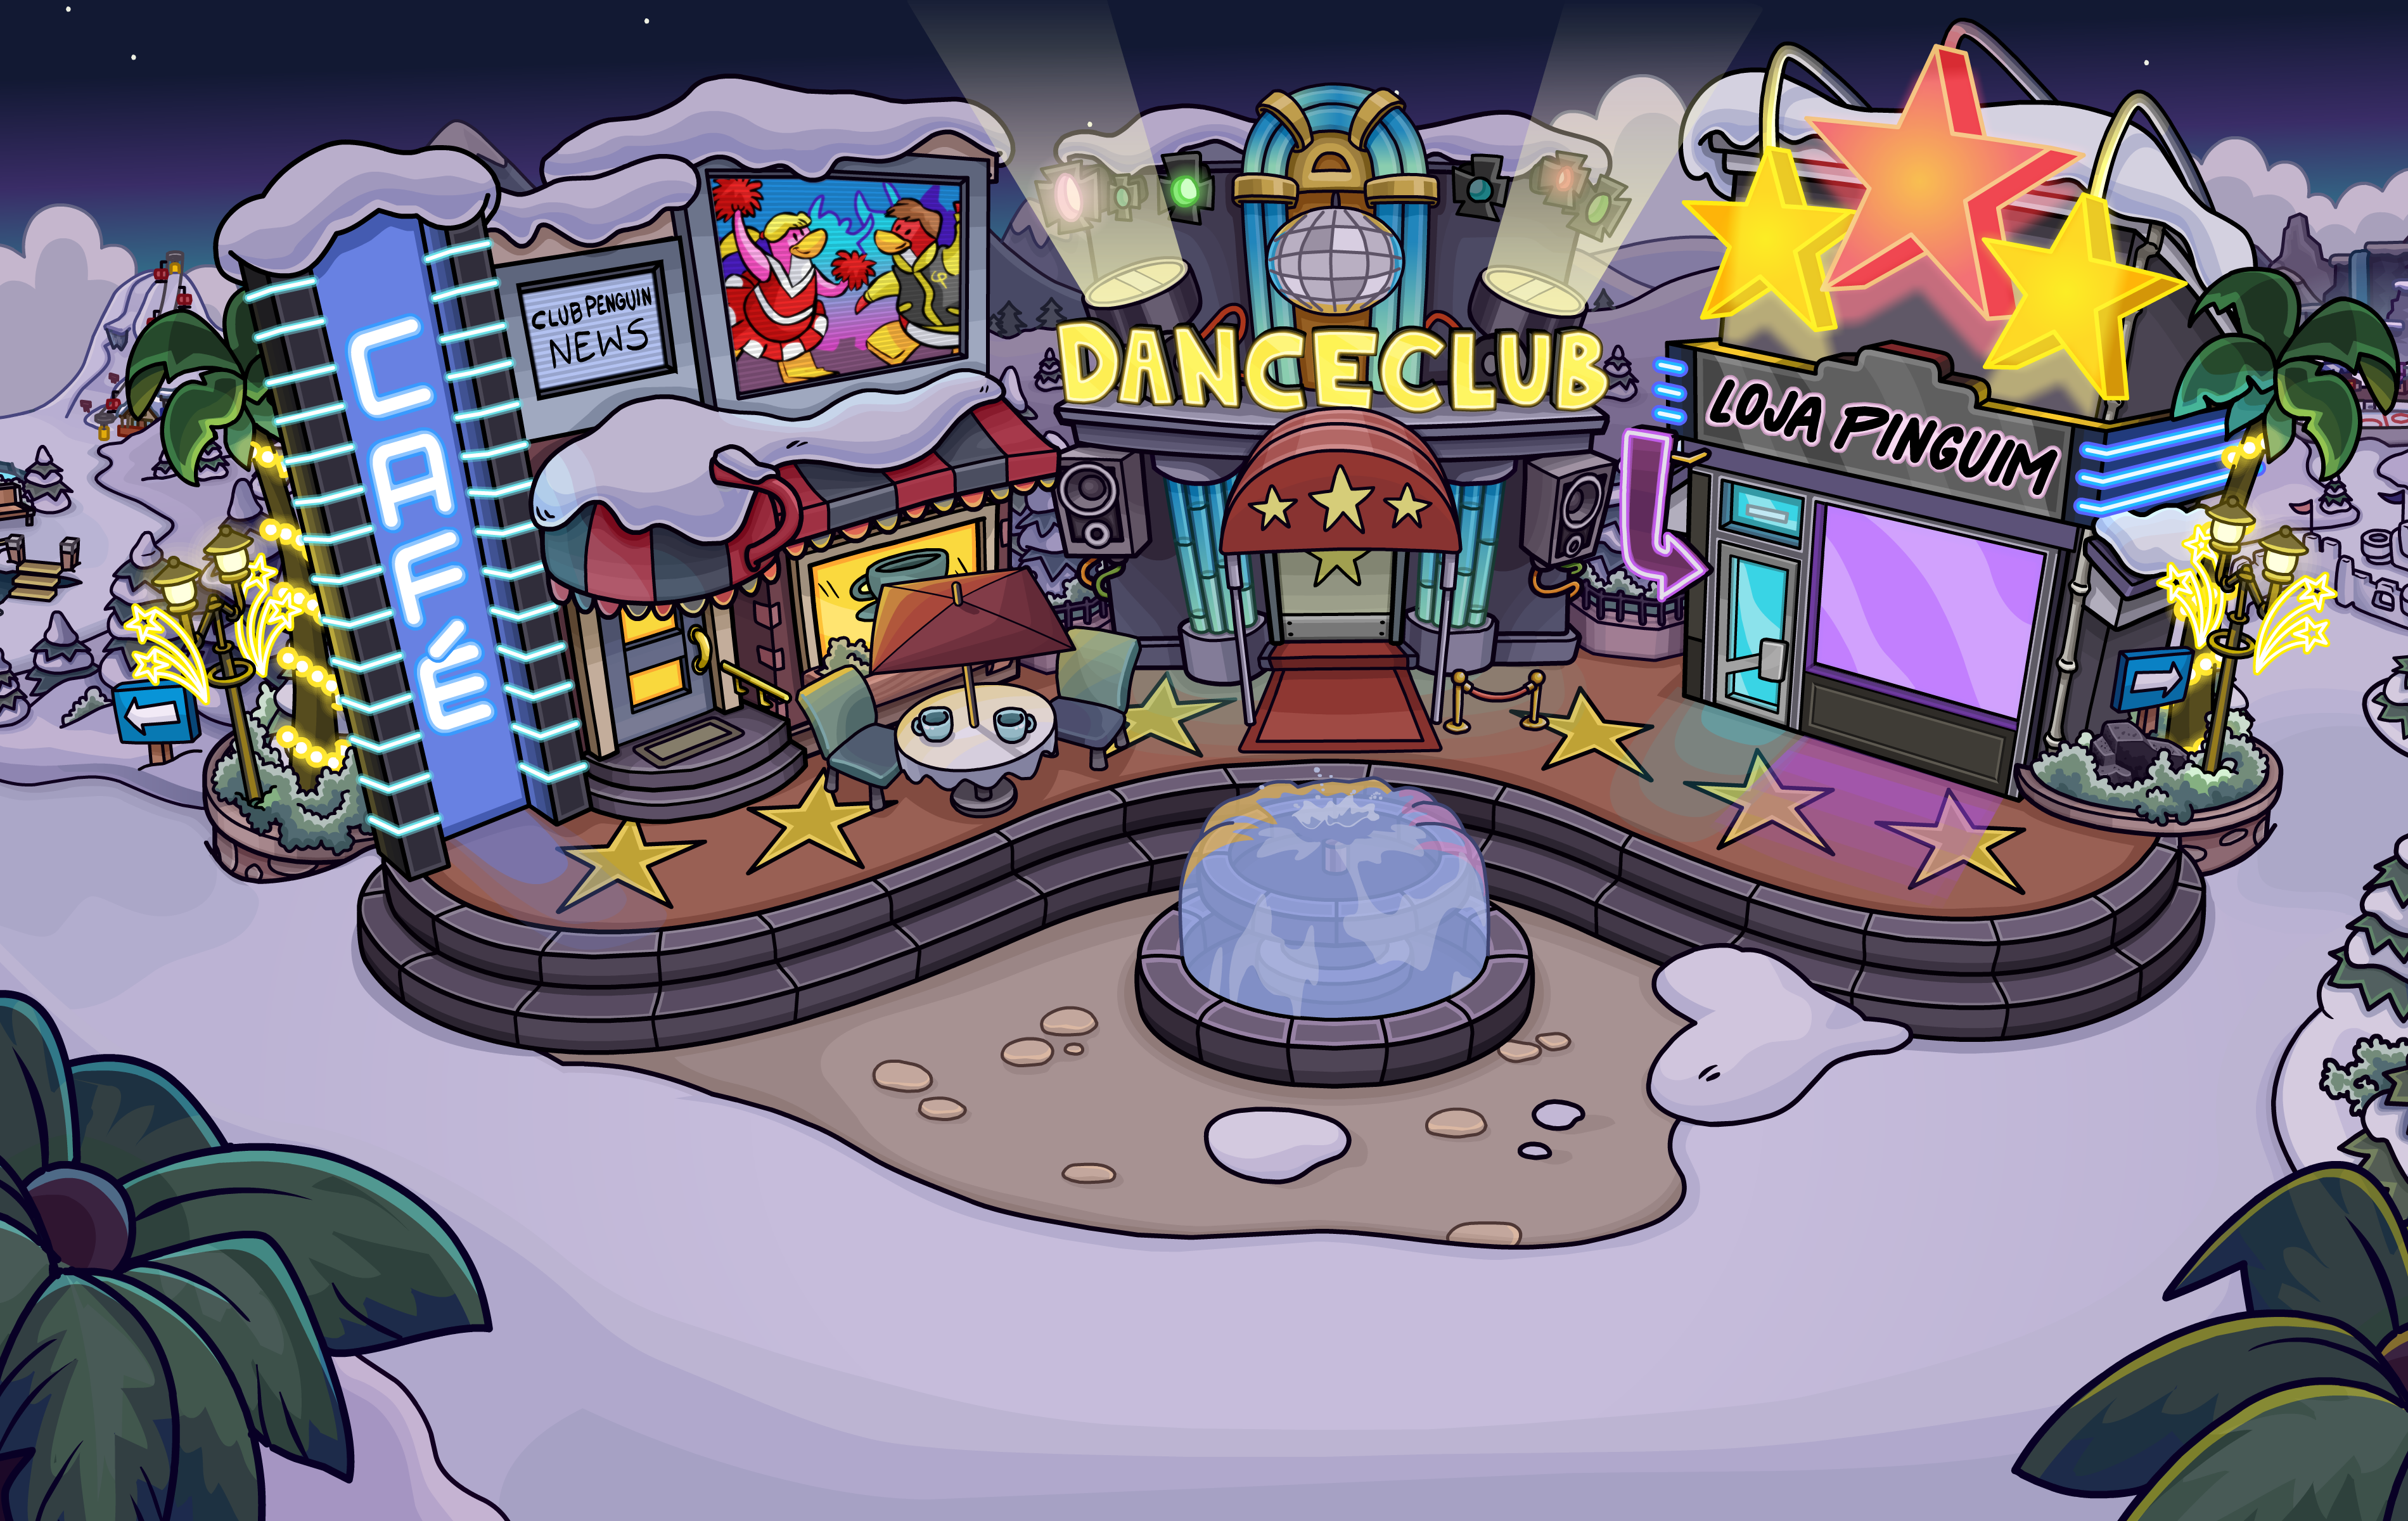 http://pt.clubpenguinwiki.info/static/images/cpwpt/4/45/CentroLuzC%C3%A2meraHollywood.png